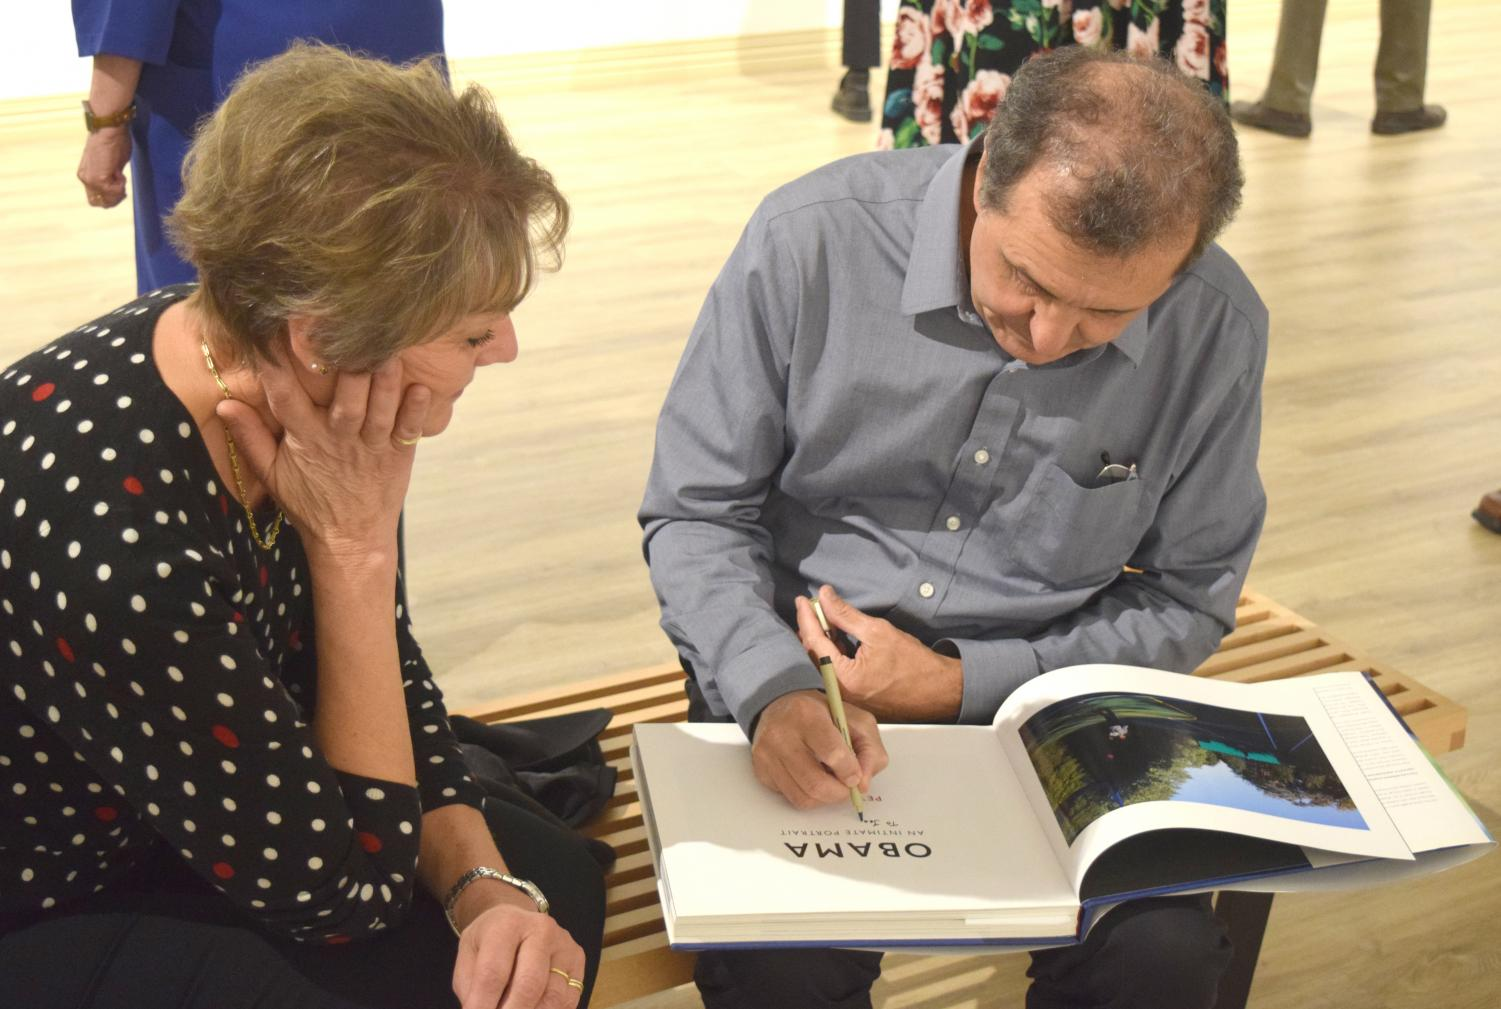 """Jean Adams, pottery/ceramics instructor for Wilkes University, has her copy of """"Obama: An Intimate Portrait: The Historic Presidency in Photographs""""  signed by Pete Souza."""